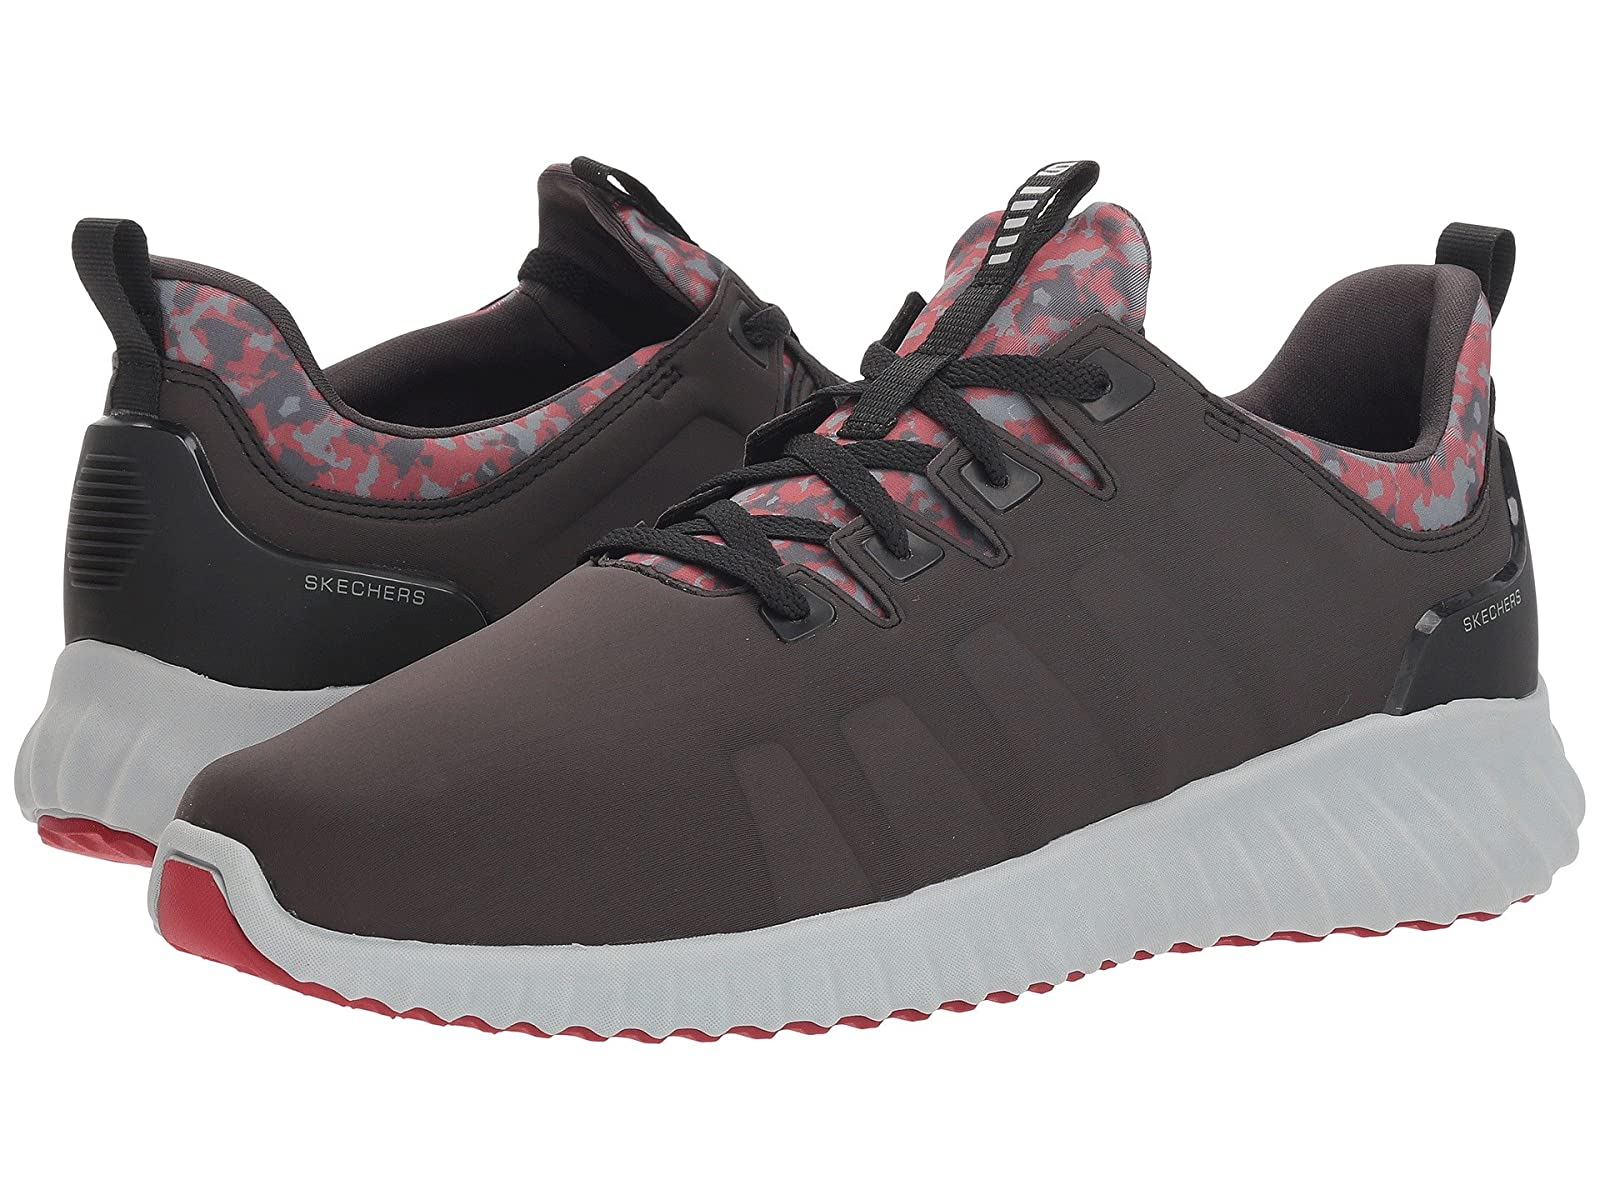 SKECHERS Skech AscentCheap and distinctive eye-catching shoes